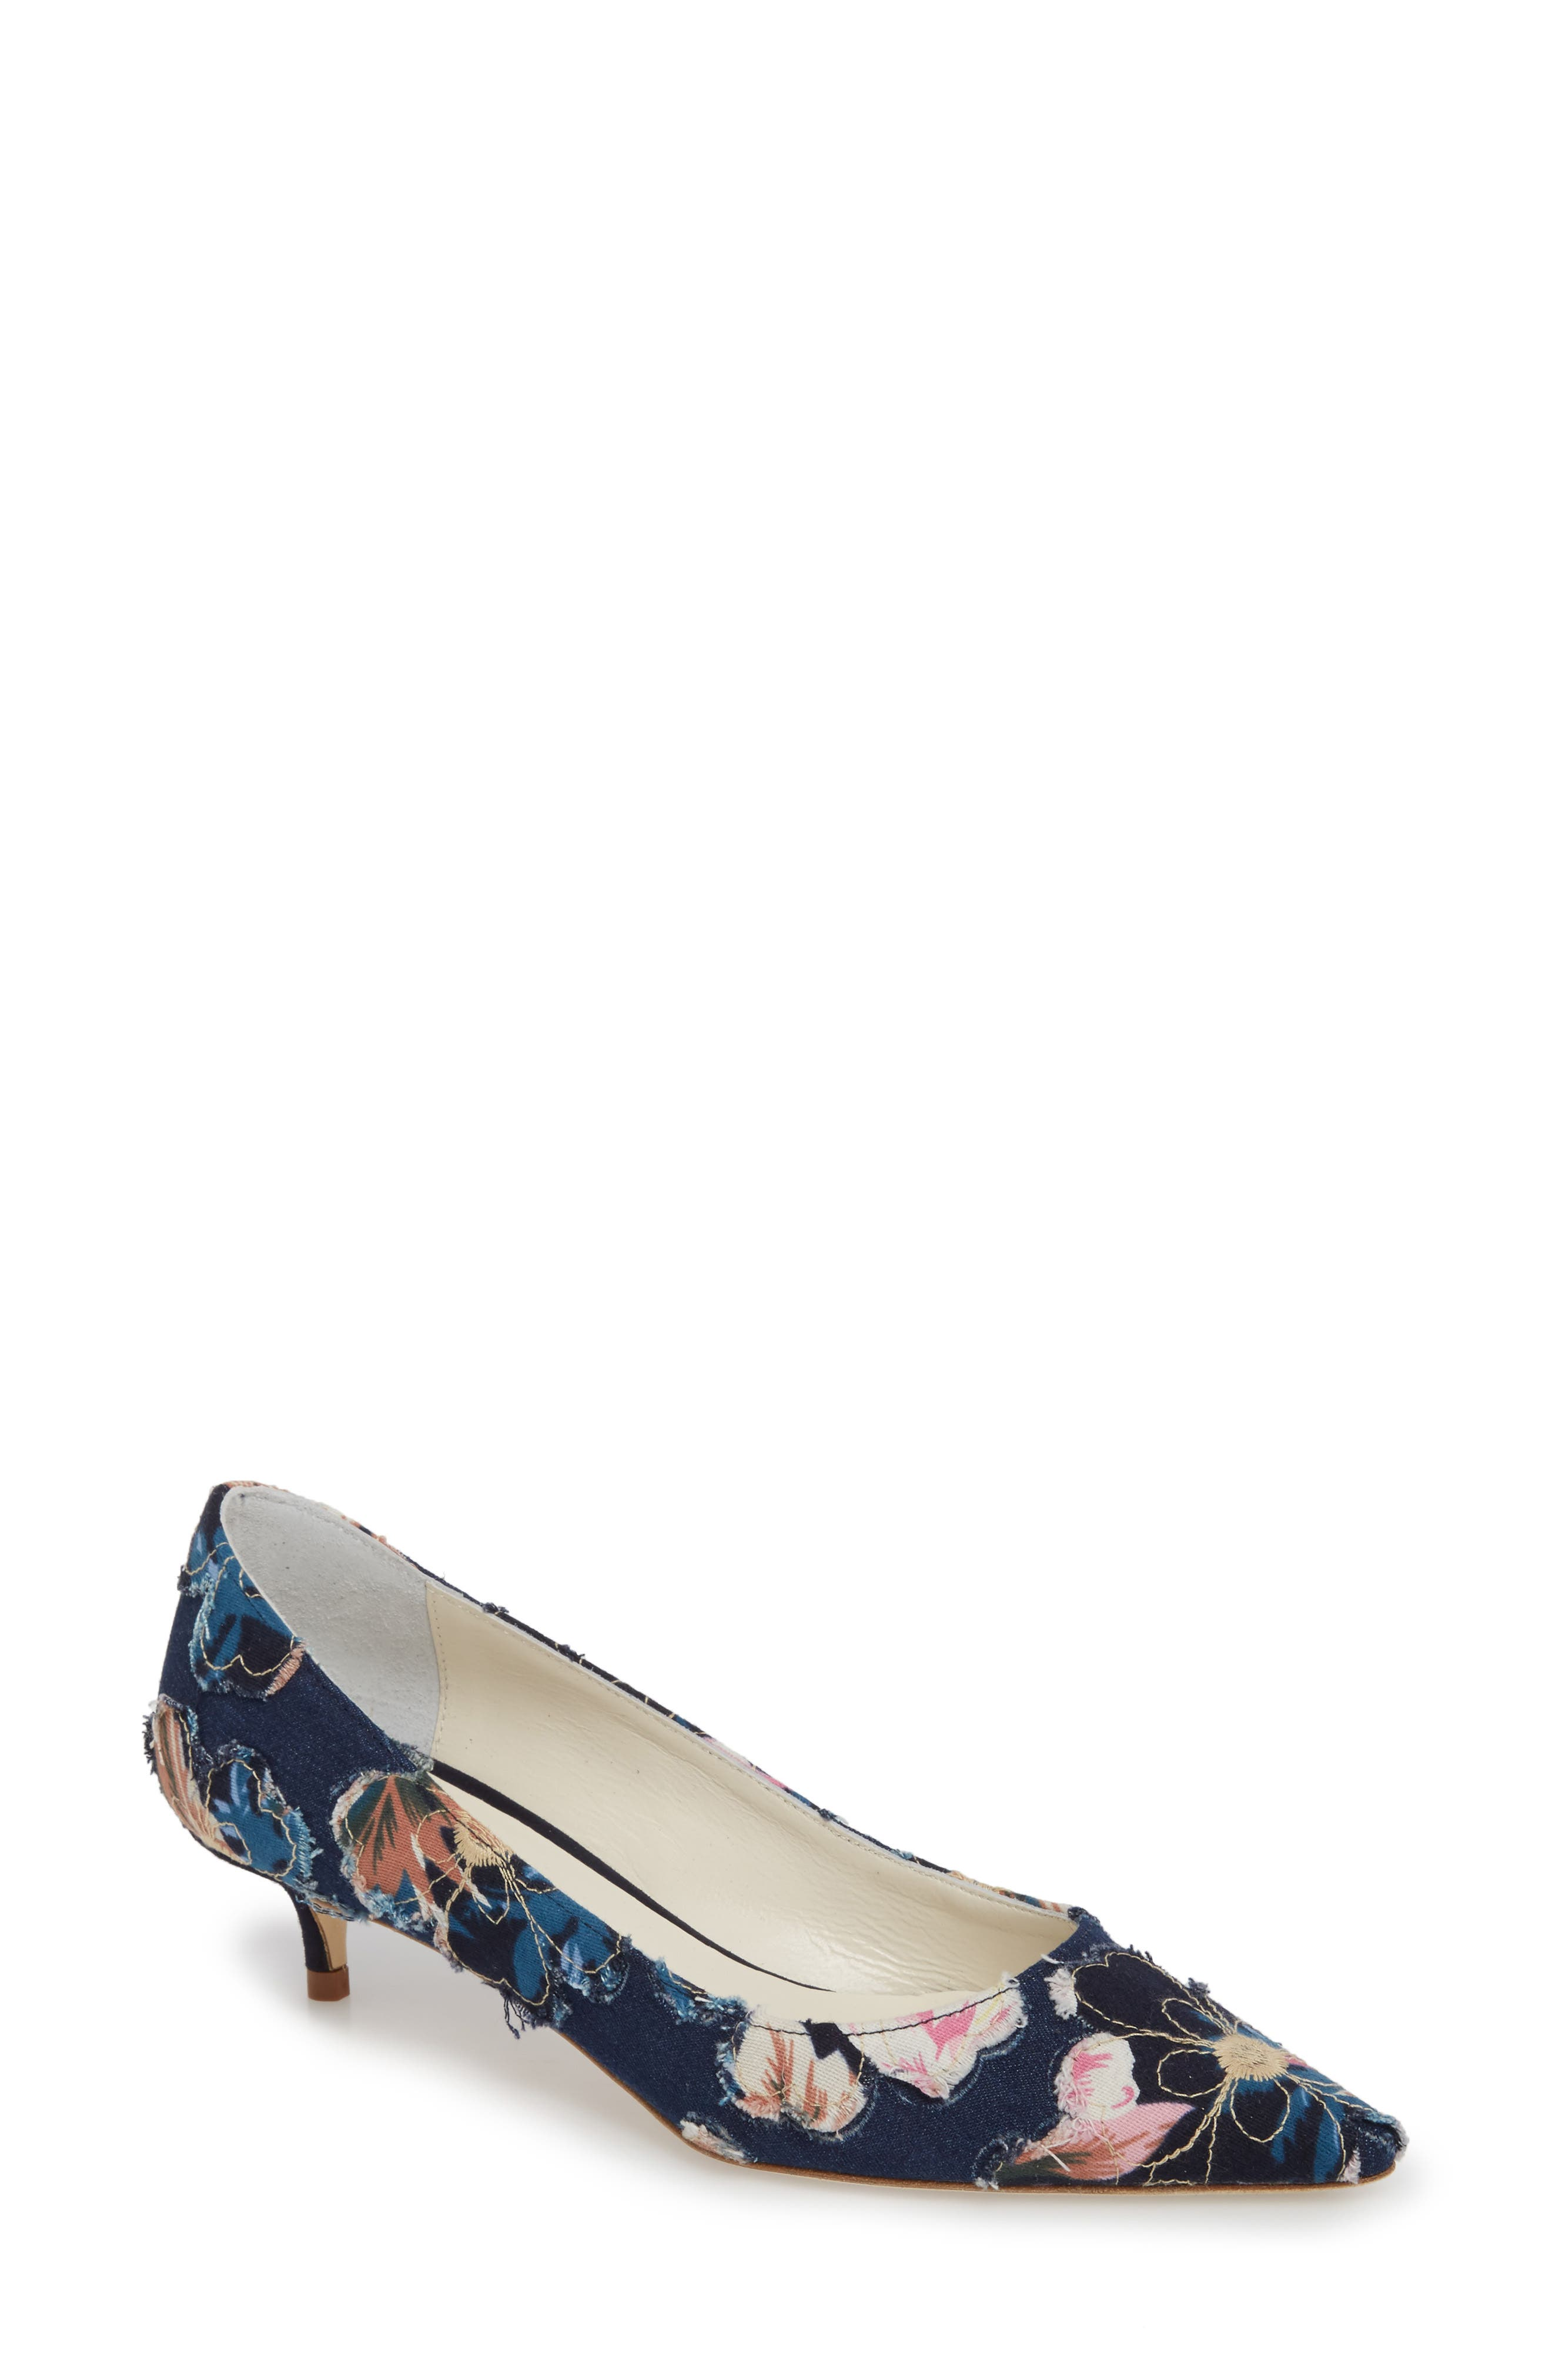 Butter Born Pointy Toe Pump,                             Main thumbnail 6, color,